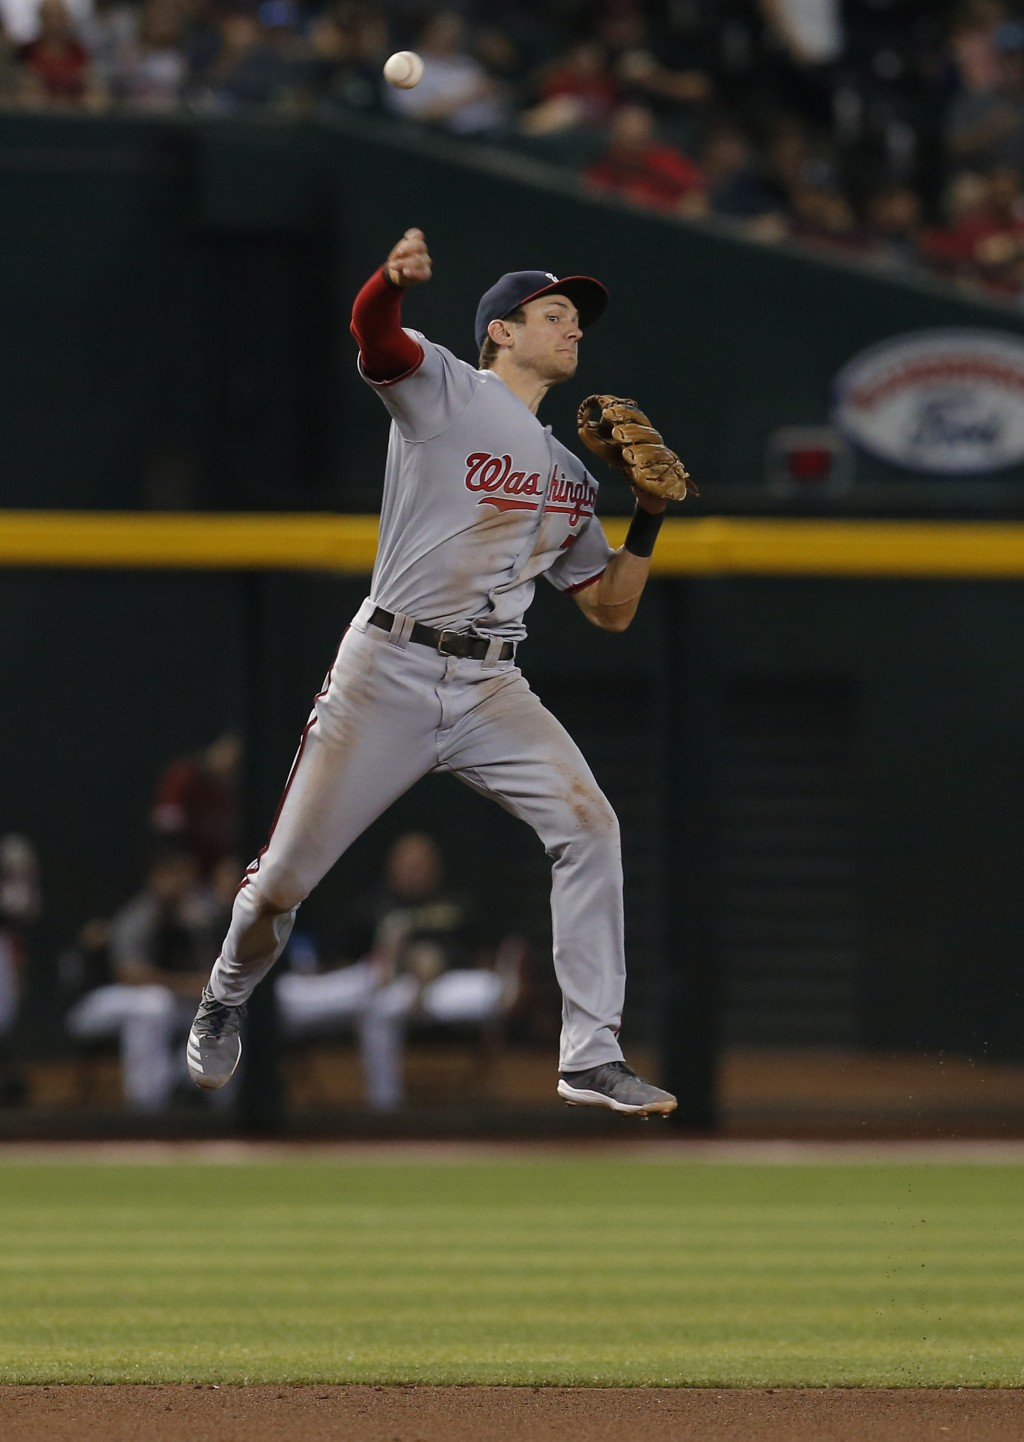 Washington Nationals shortstop Trea Turner makes a off-balance throw for an out on a ball hit by Arizona Diamondbacks' Nick Ahmed in the fourth inning...